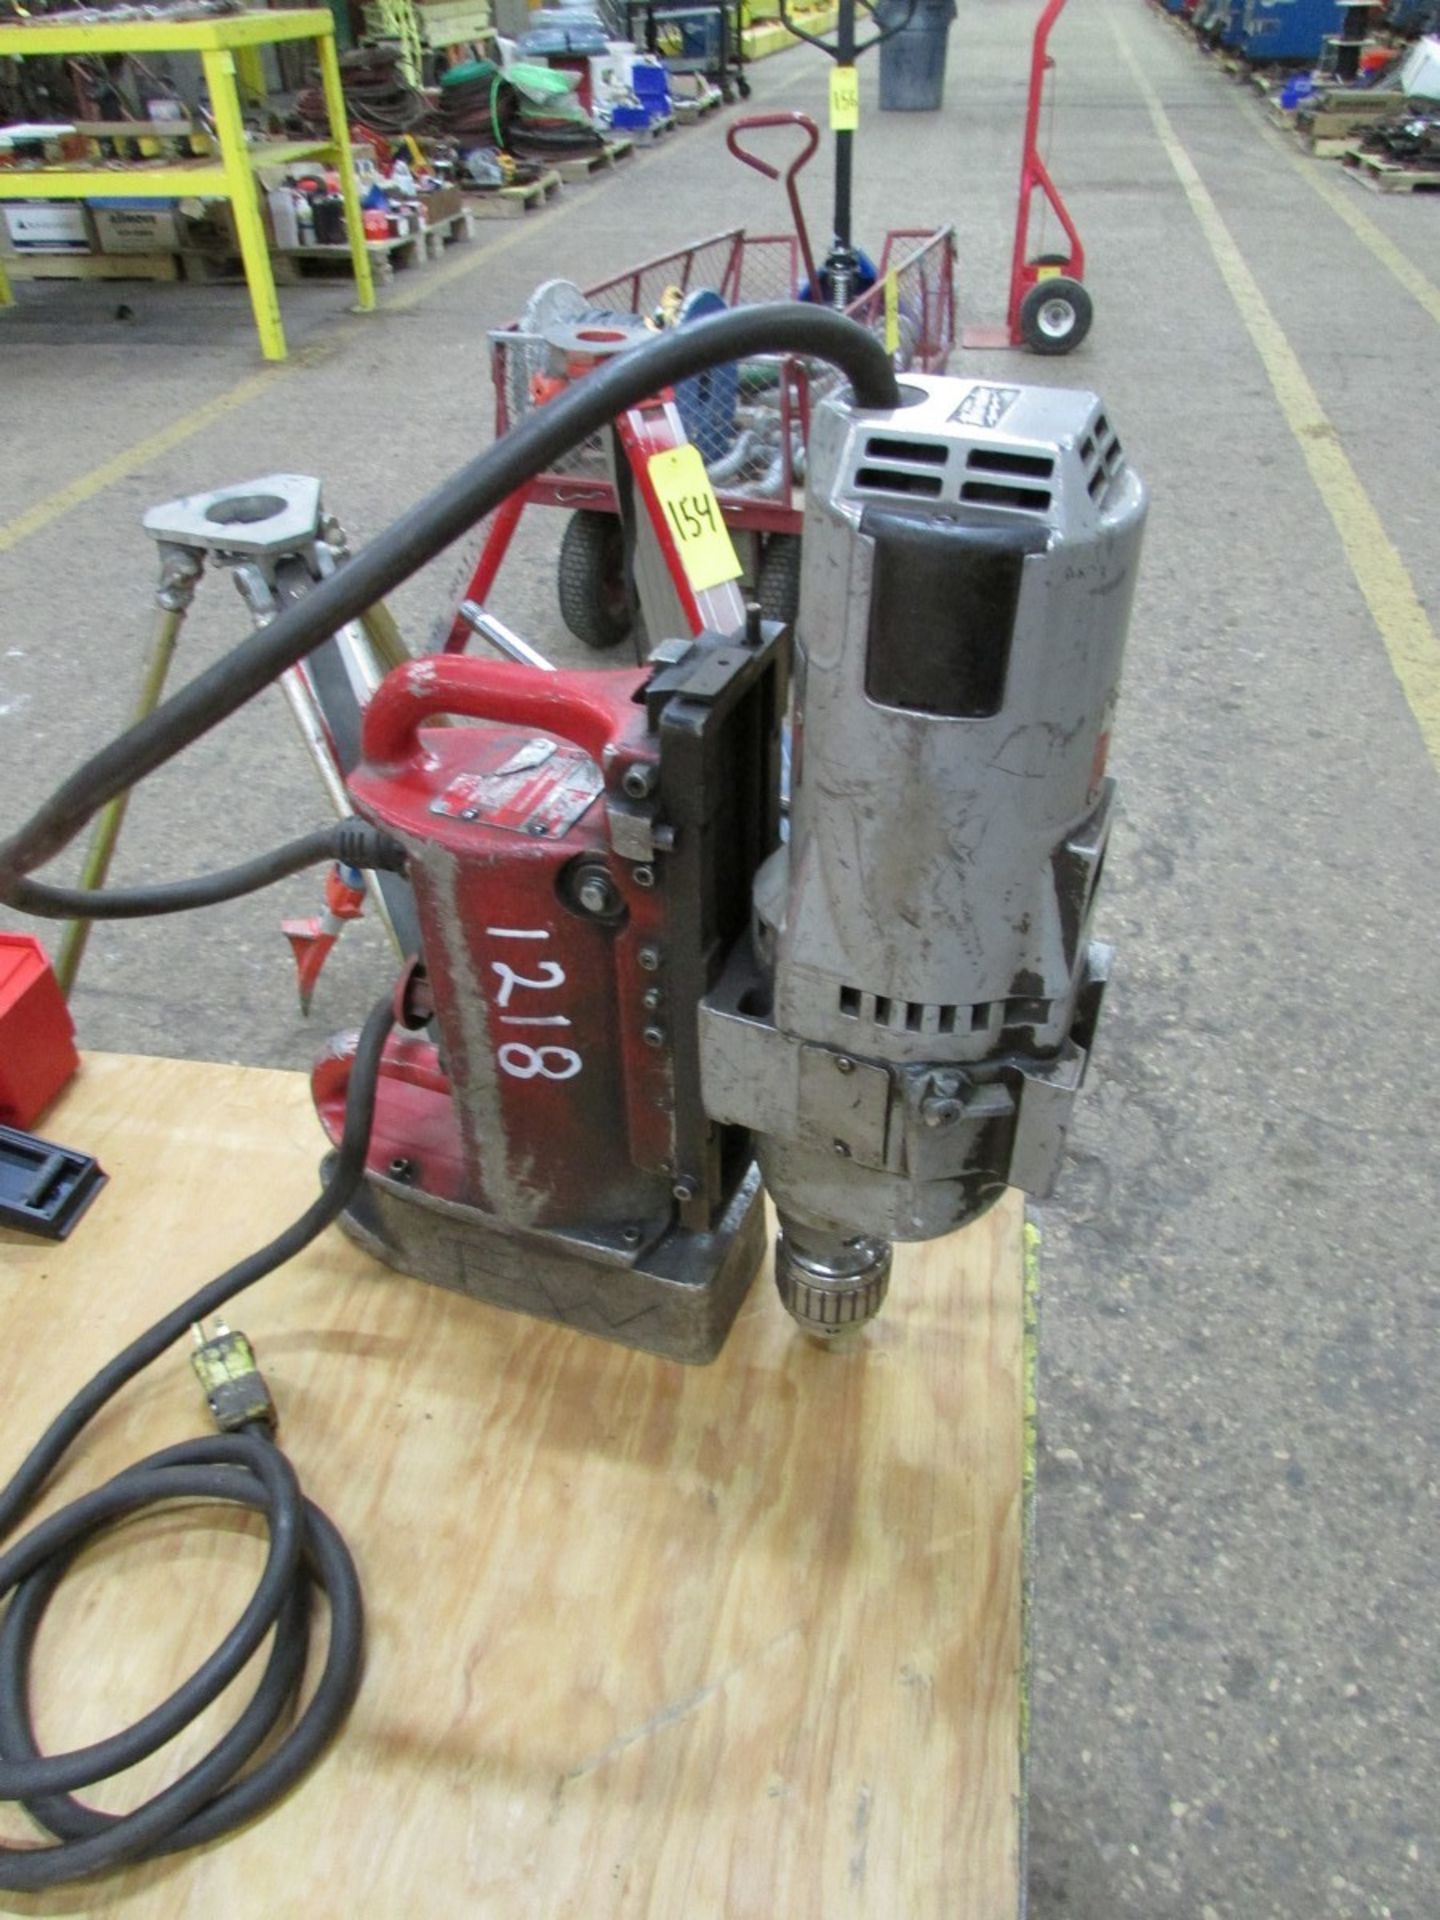 Lot 149 - Milwaukee Magnetic Drill w/ 1/2'' chuck, 3MT spindle, 120V